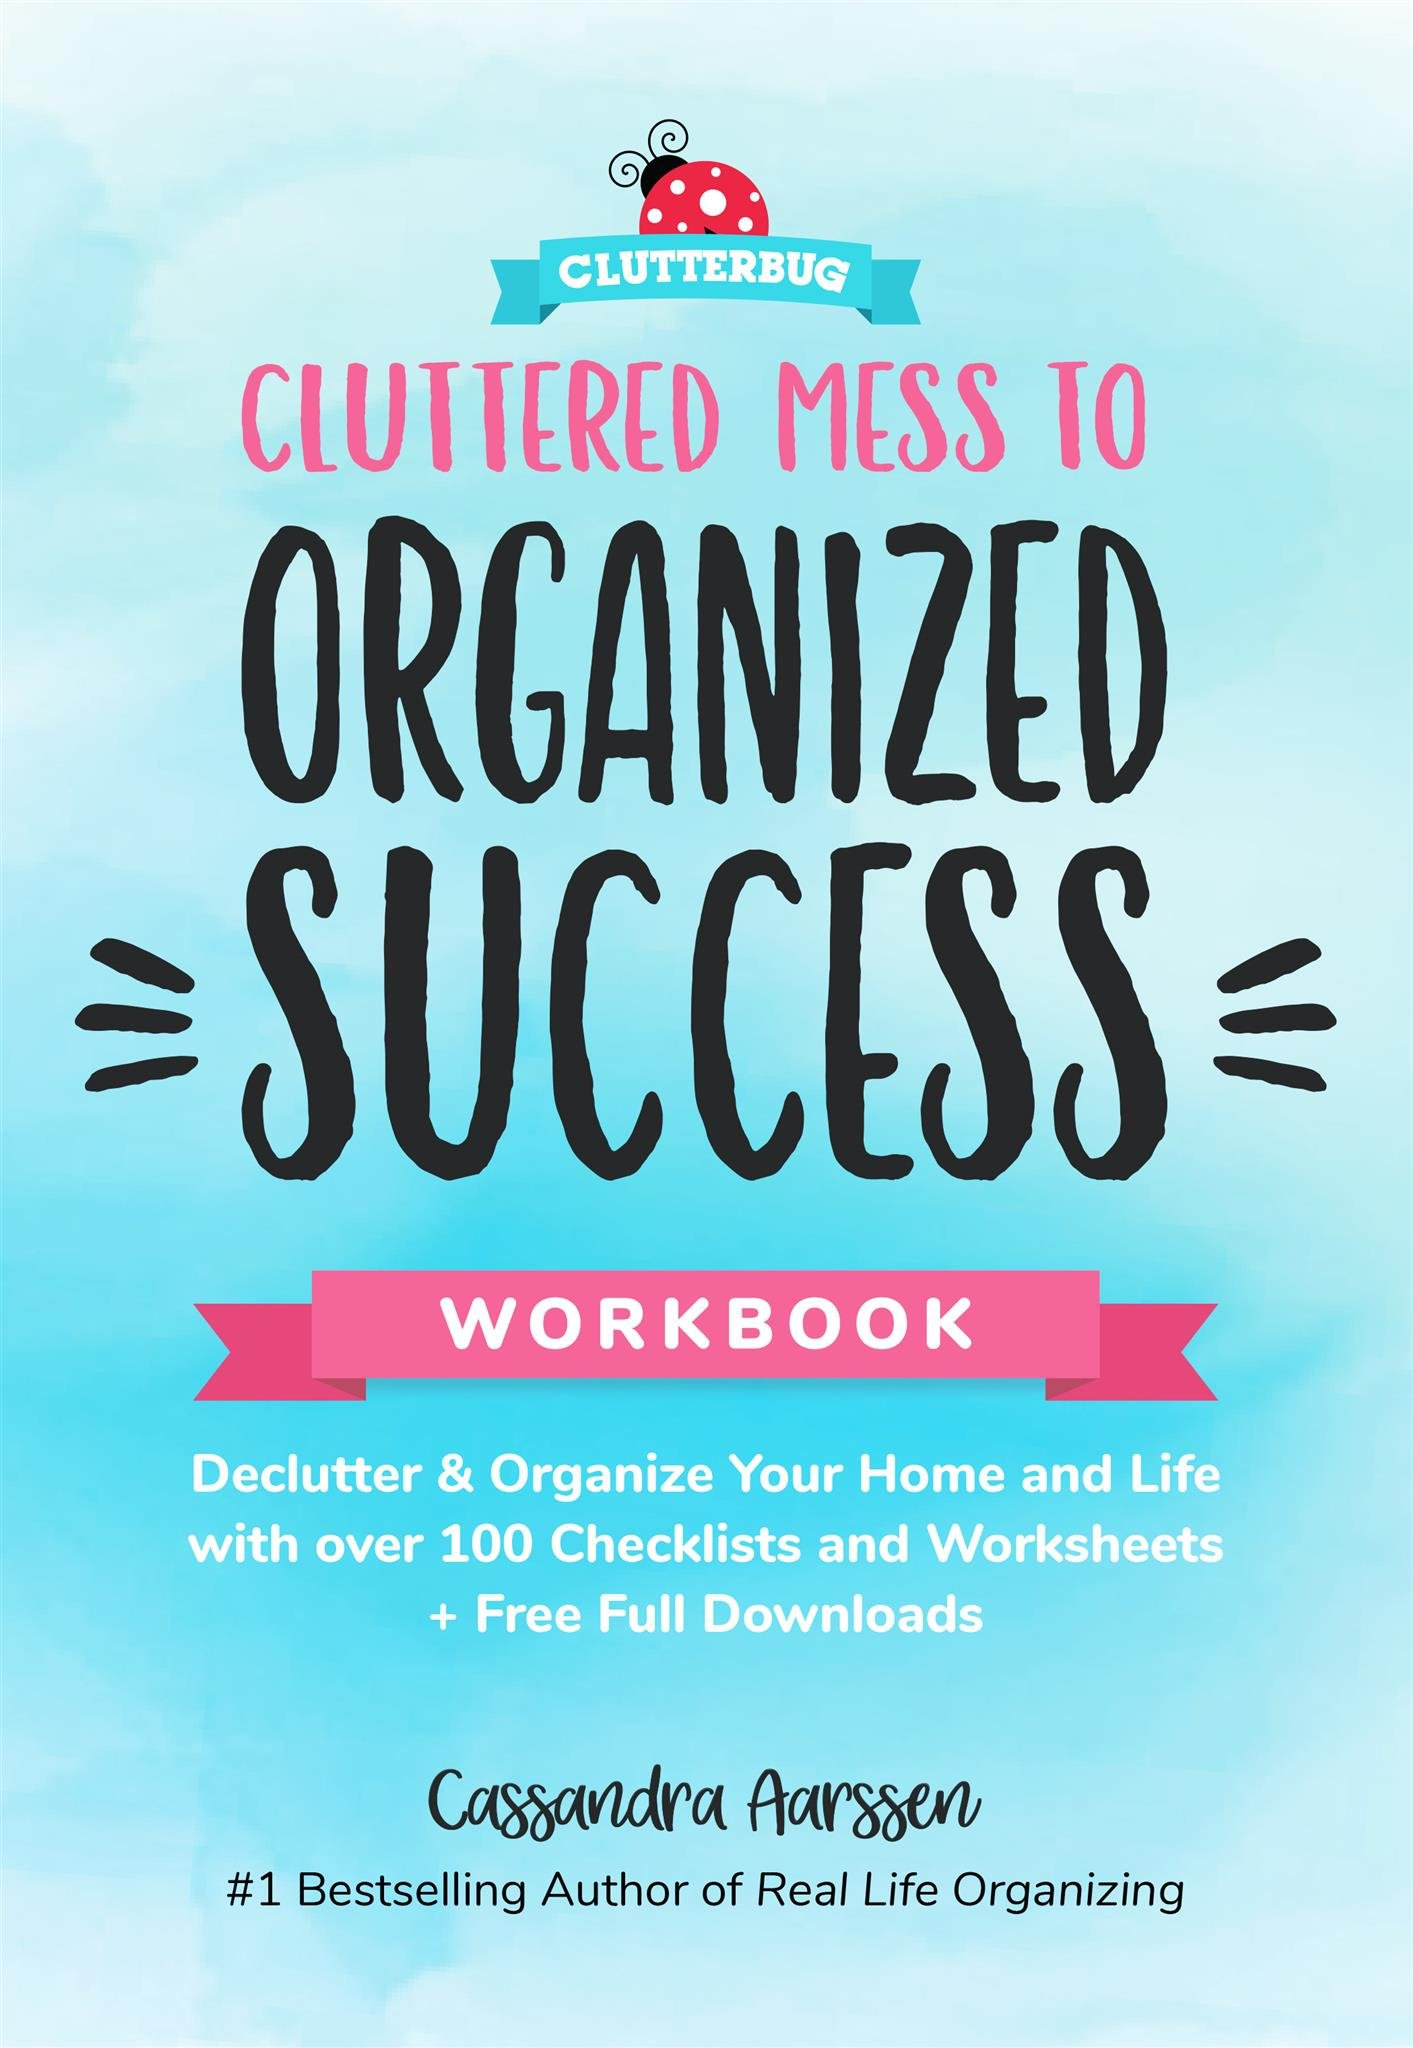 Cluttered Mess To Organized Success Workbook  Declutter And Organize Your Home And Life With Over 100 Checklists And Worksheets  Plus Free Full Downloads   English Edition